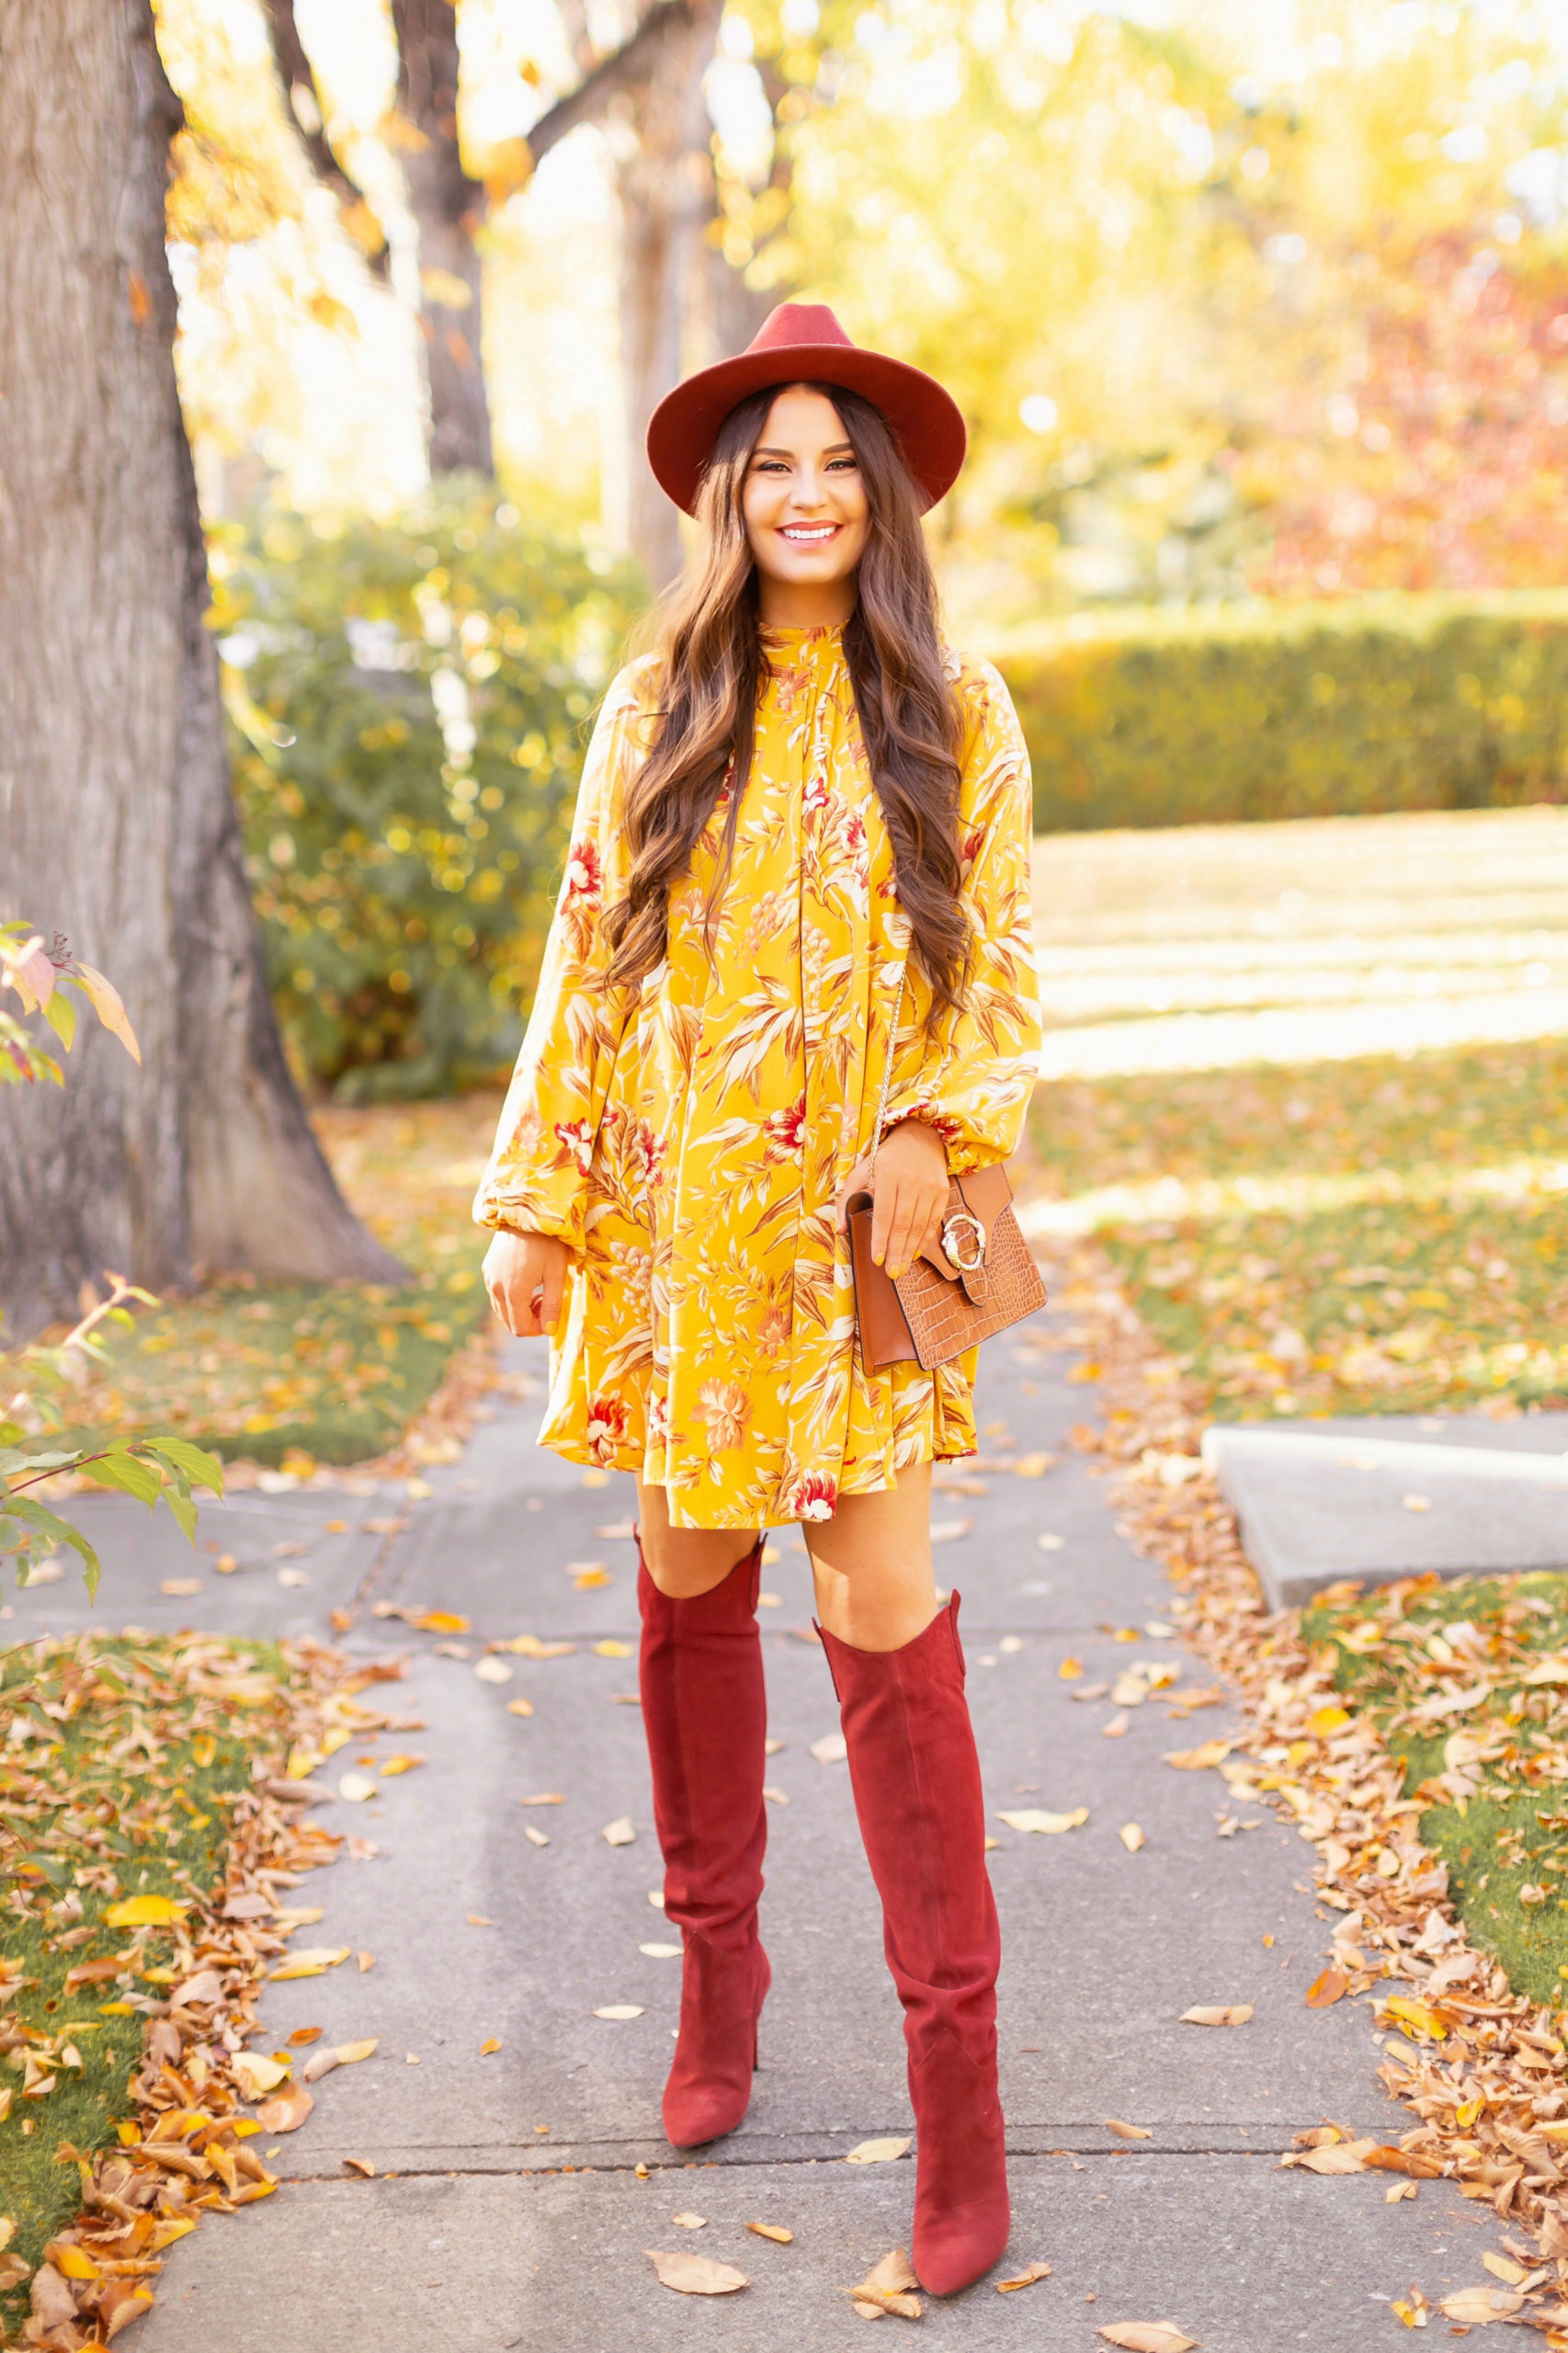 Early Autumn 2020 Lookbook | Mindful Mustard | Smiling brunette woman wearing a rust fedora, a mustard yellow botanical print shift dress, rust knee high western boots and a cognac croc-embossed bag on a sunny autumn afternoon | warm weather fall outfit ideas | Fall 2020 Trend Guide | Casual Fall Fashion | Boho Fall 2020 Outfit Ideas | Fall in Calgary | | Transitional Summer Meets Autumn Fashion | Fall Photoshoot | Calgary Alberta Fashion & Lifestyle Blogger // JustineCelina.com